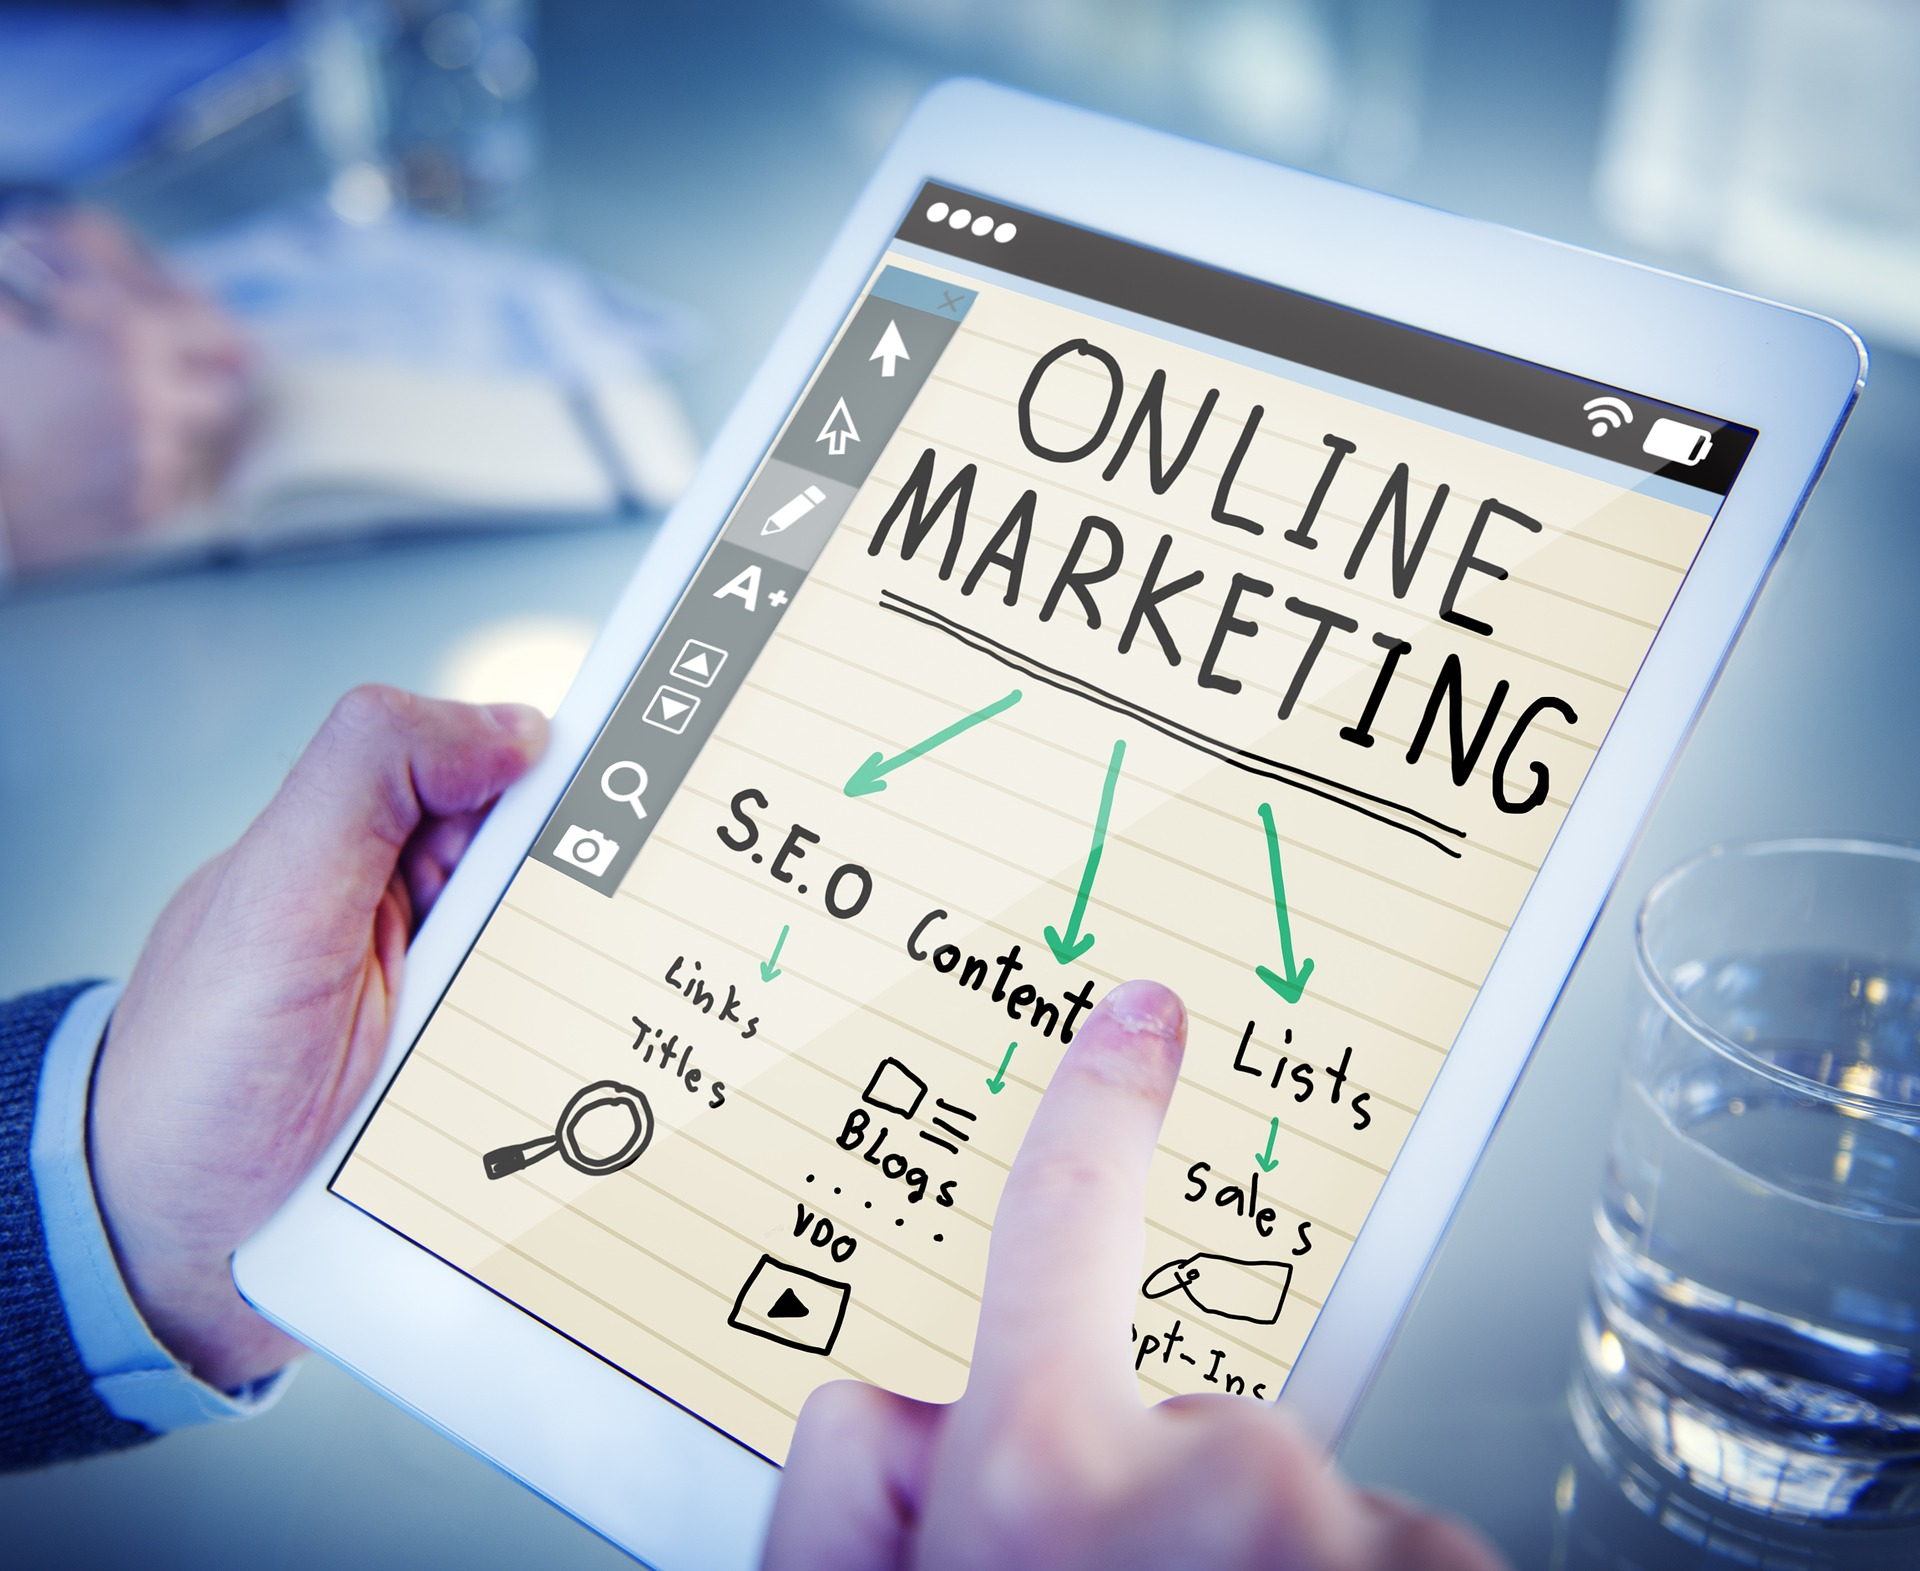 7 Essential Digital Marketing Techniques Every Marketer Should Know